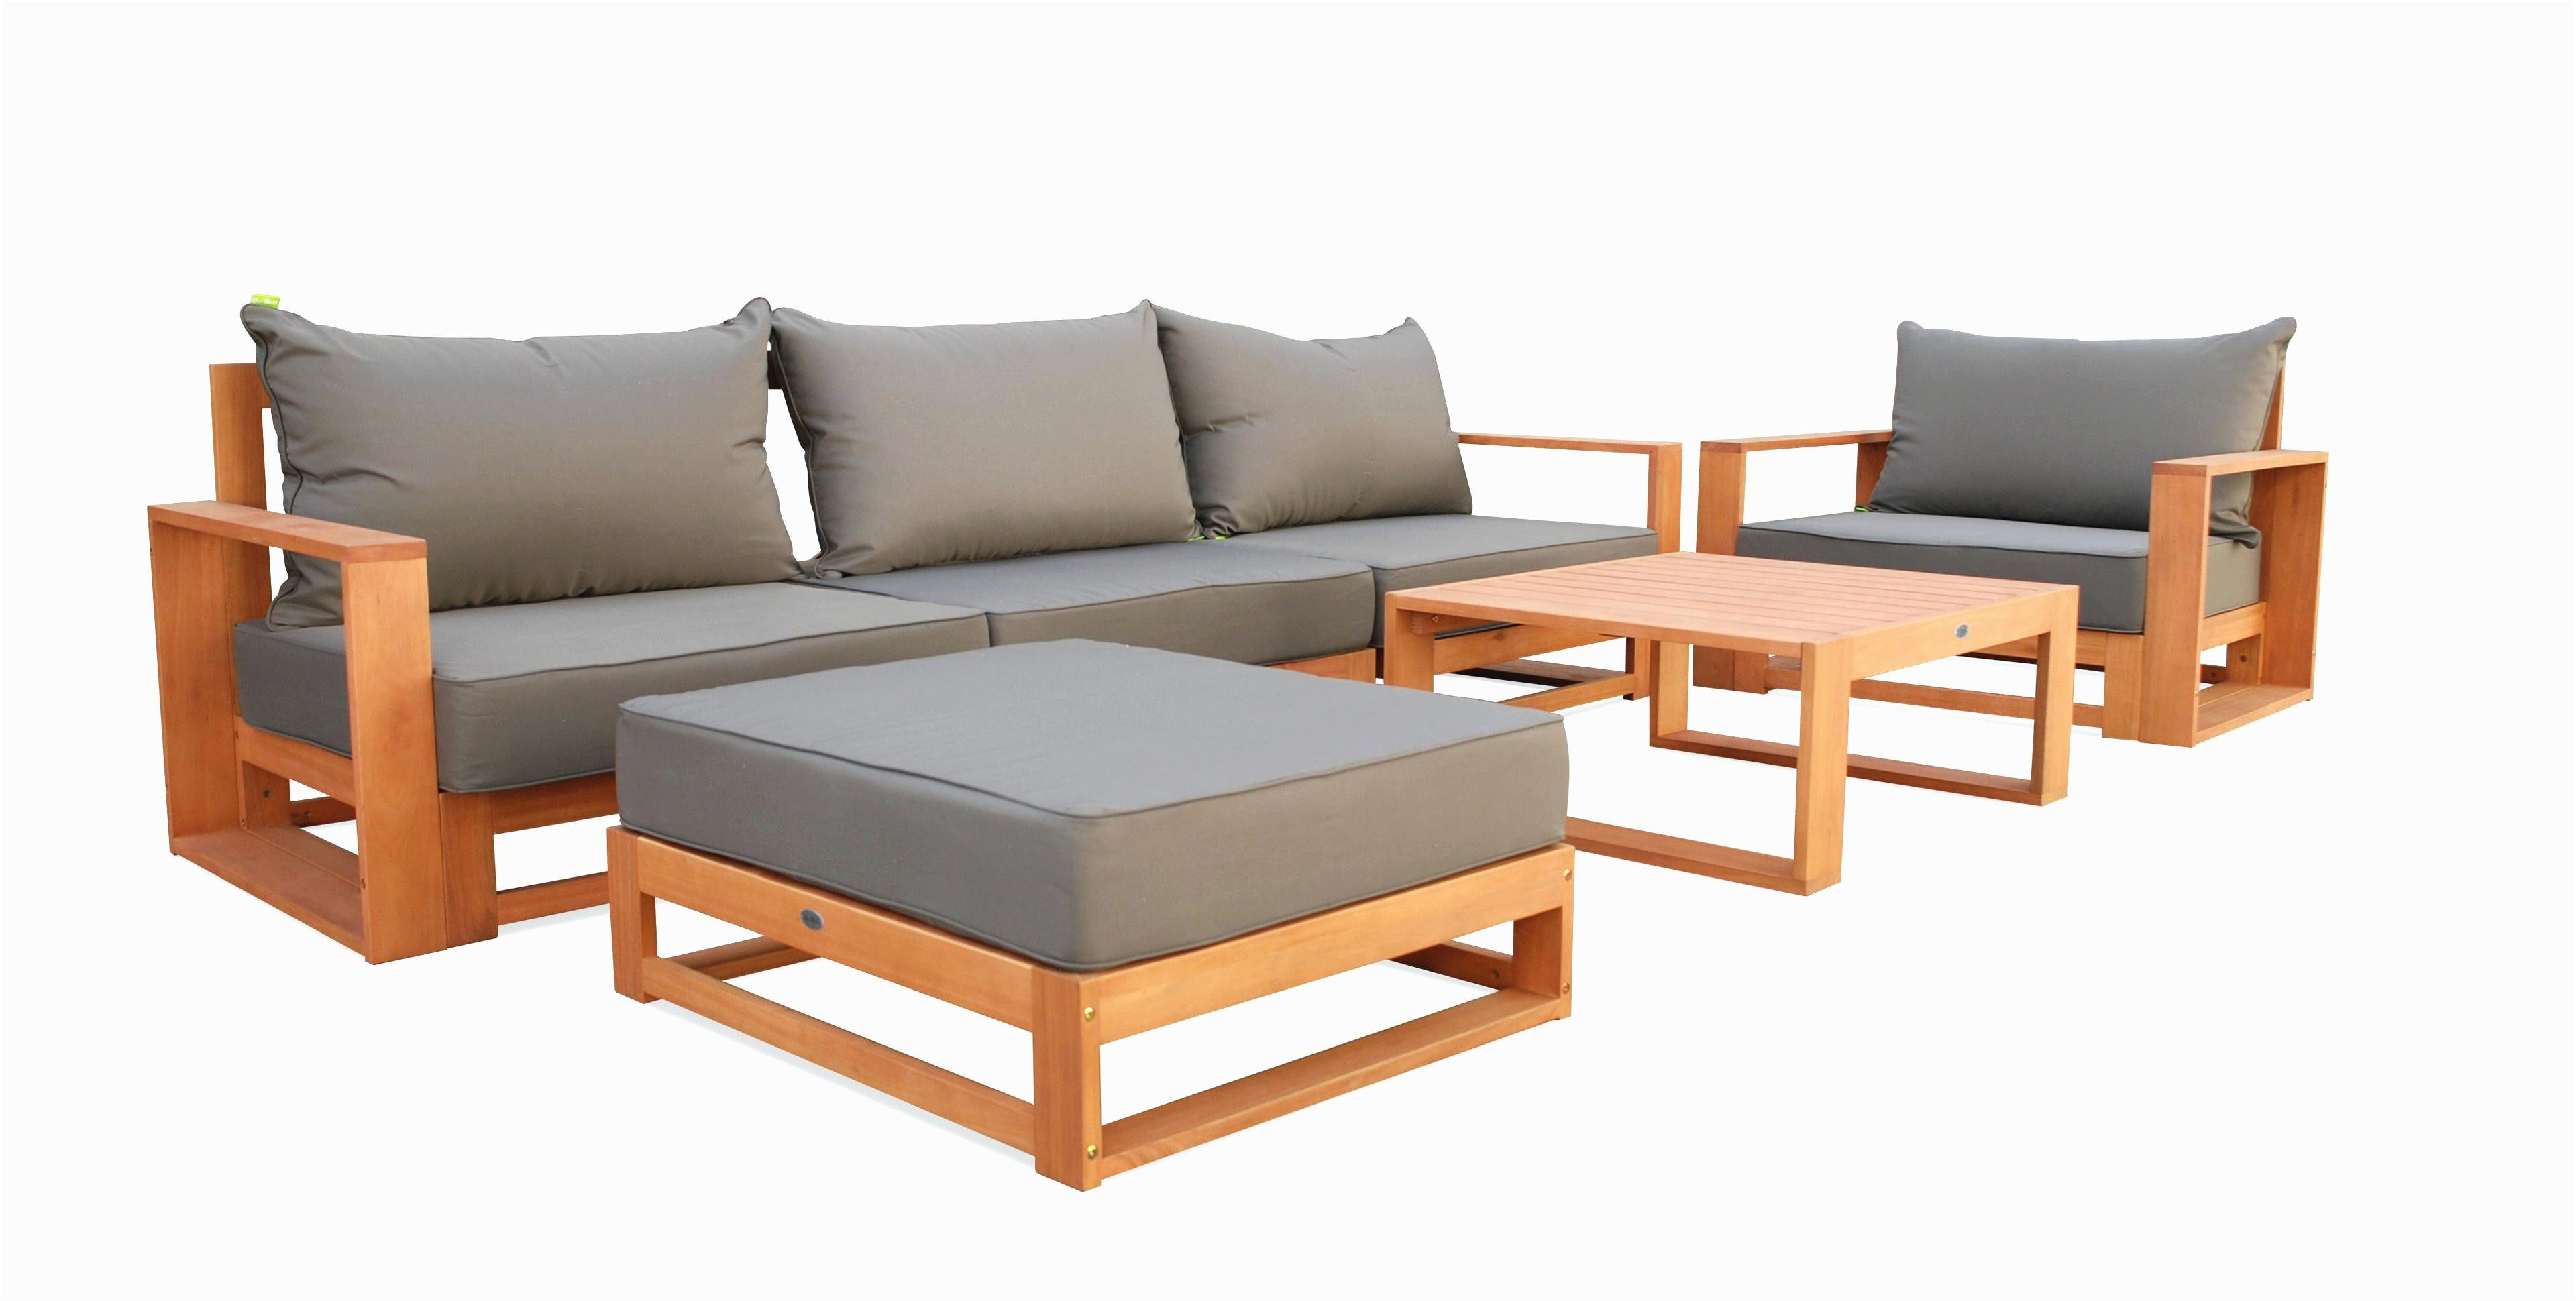 10 Realiste Leroy Merlin Table Pliante Collection Outdoor Furniture Sets Outdoor Sectional Sofa Furniture